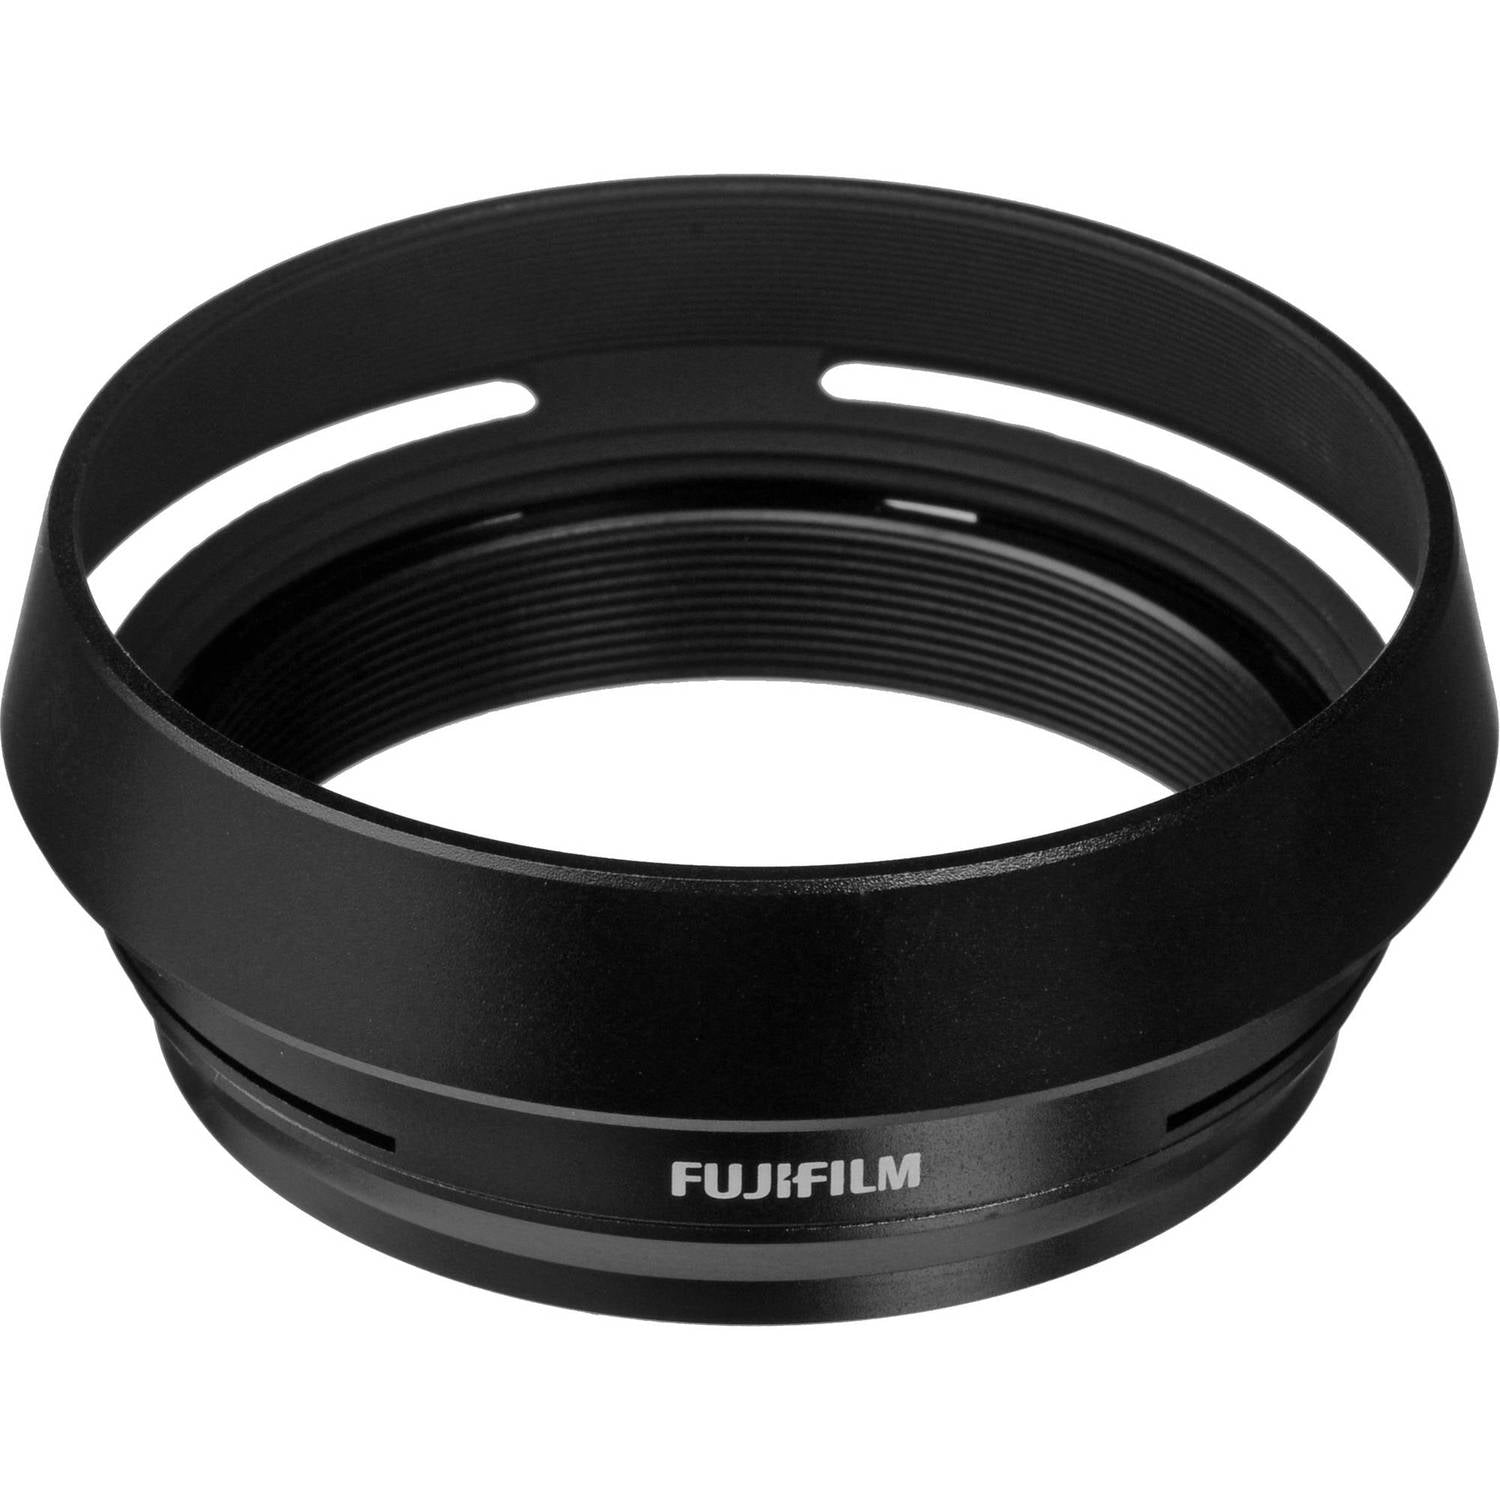 FUJIFILM LH-100 Lens Hood and Adapter Ring for X100/X100S (Black)